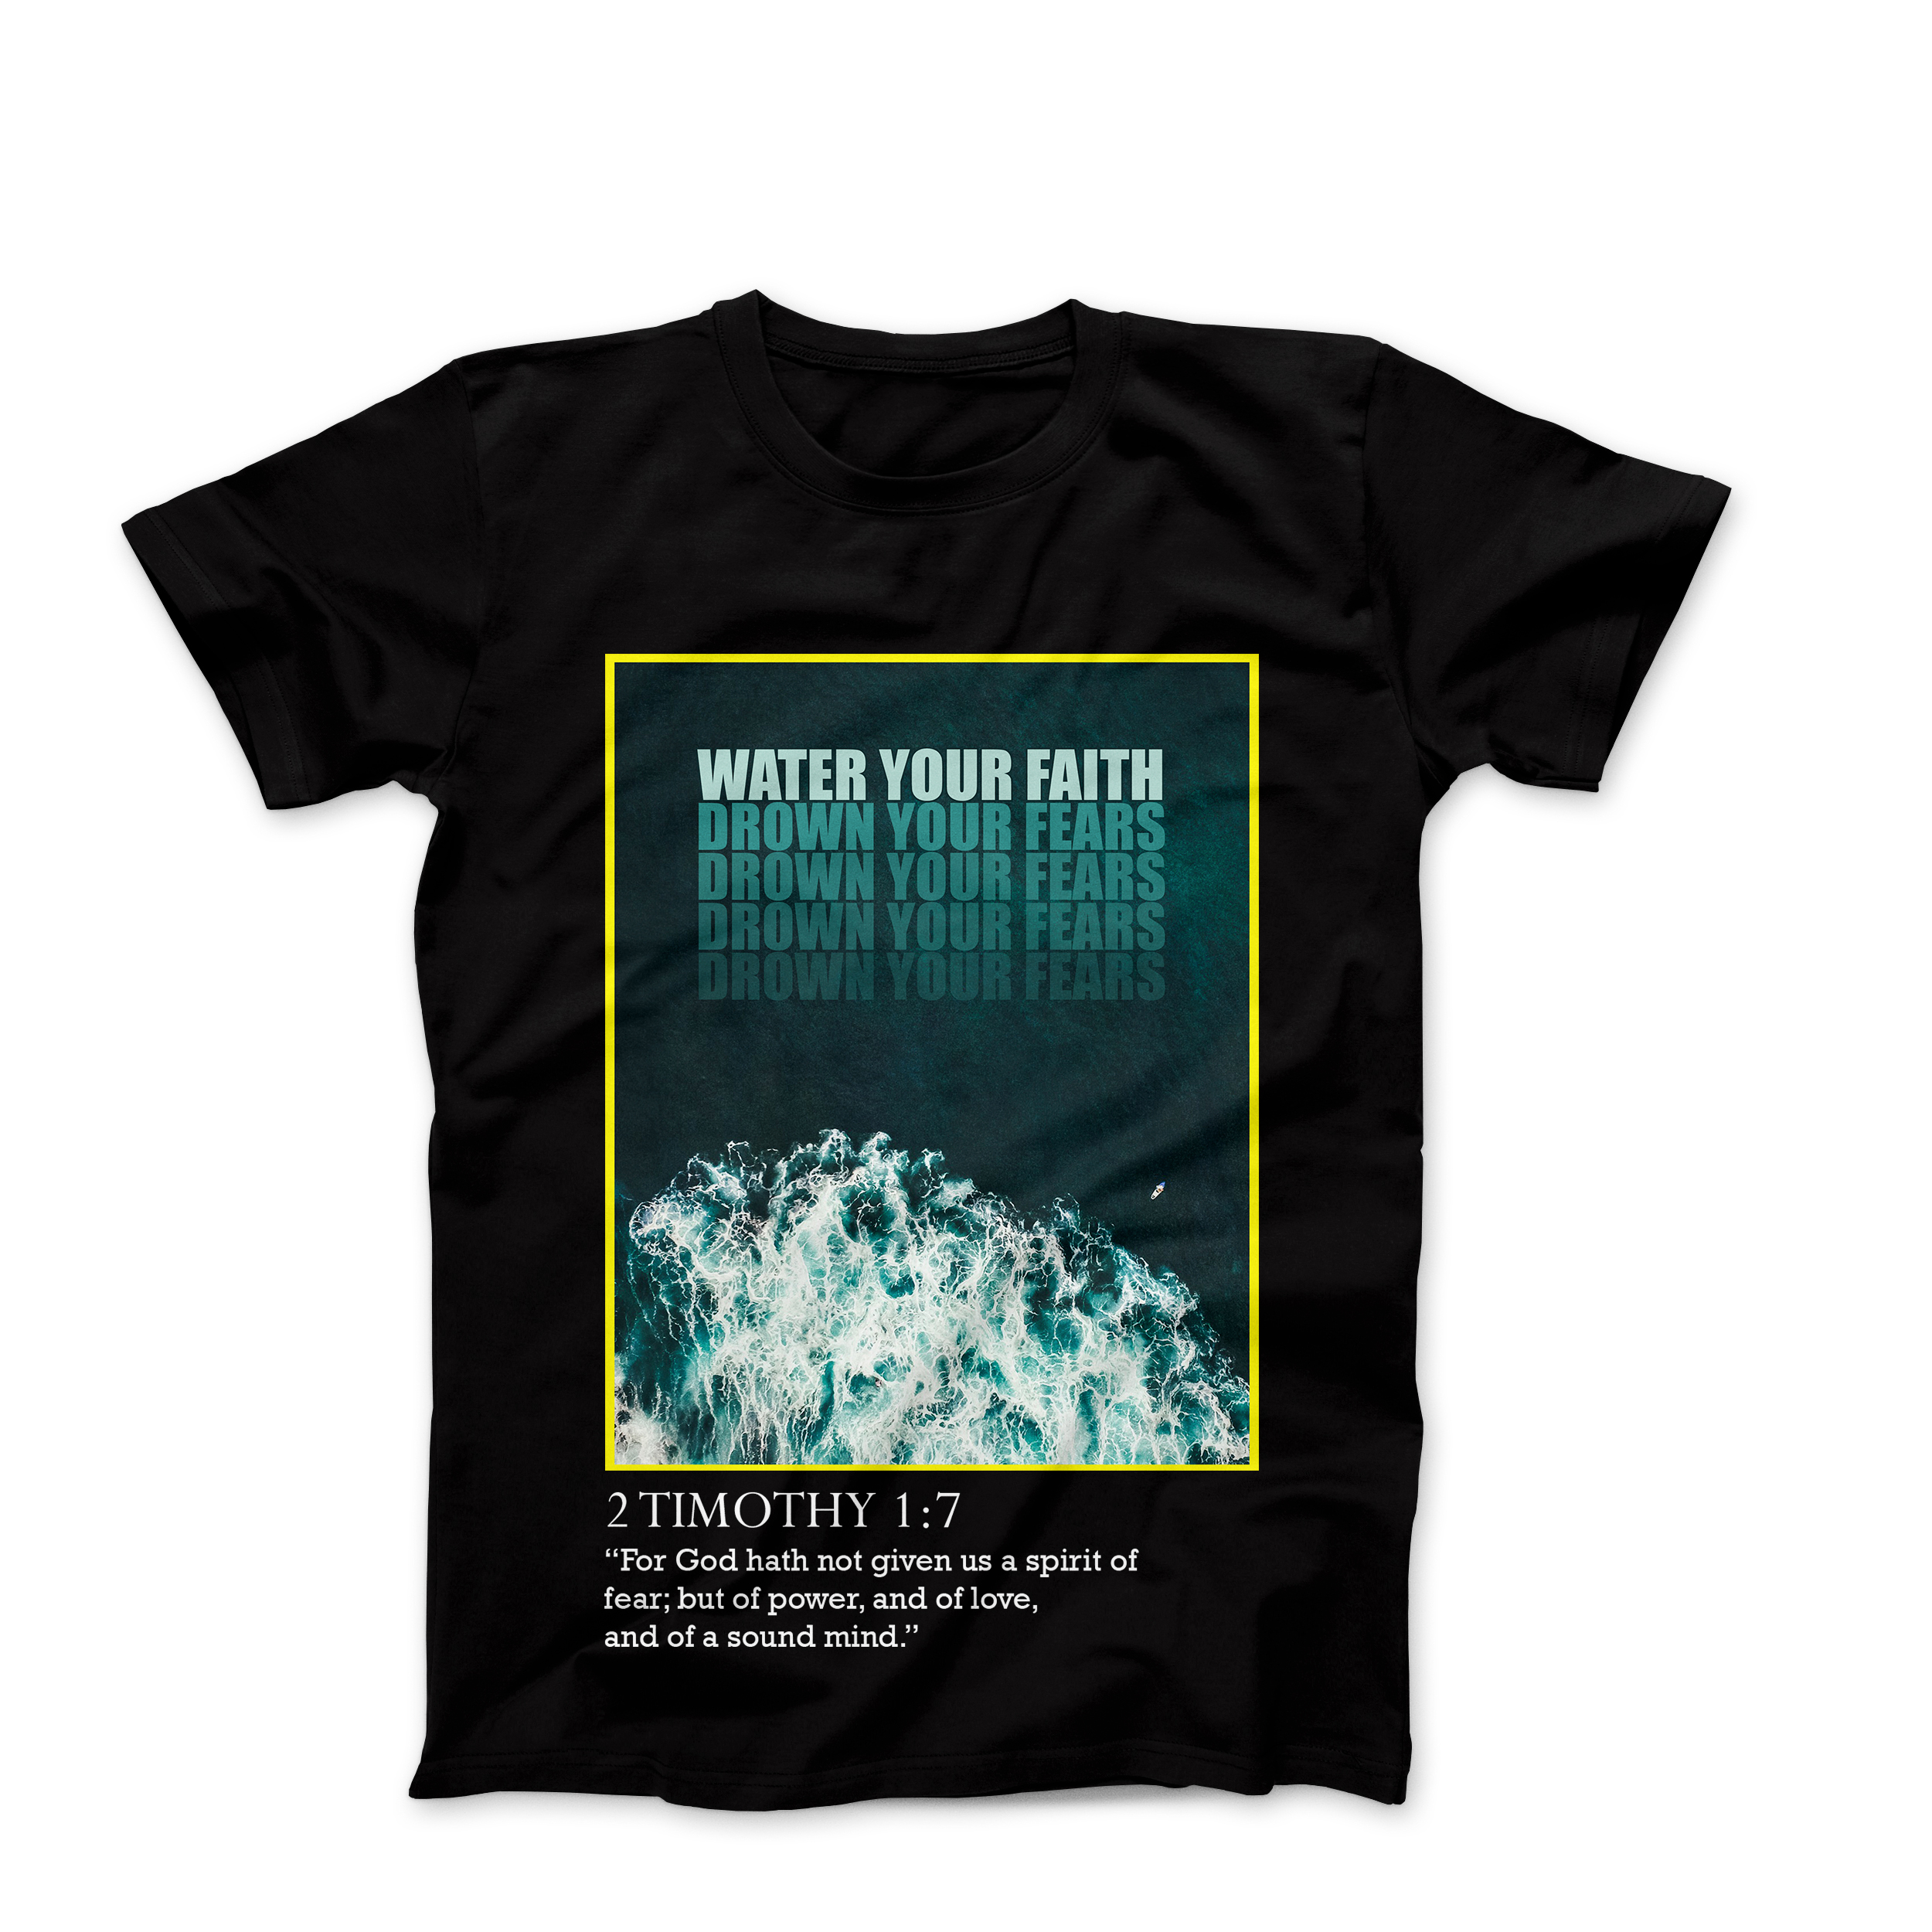 """WATER YOUR FAITH"" T-SHIRT"